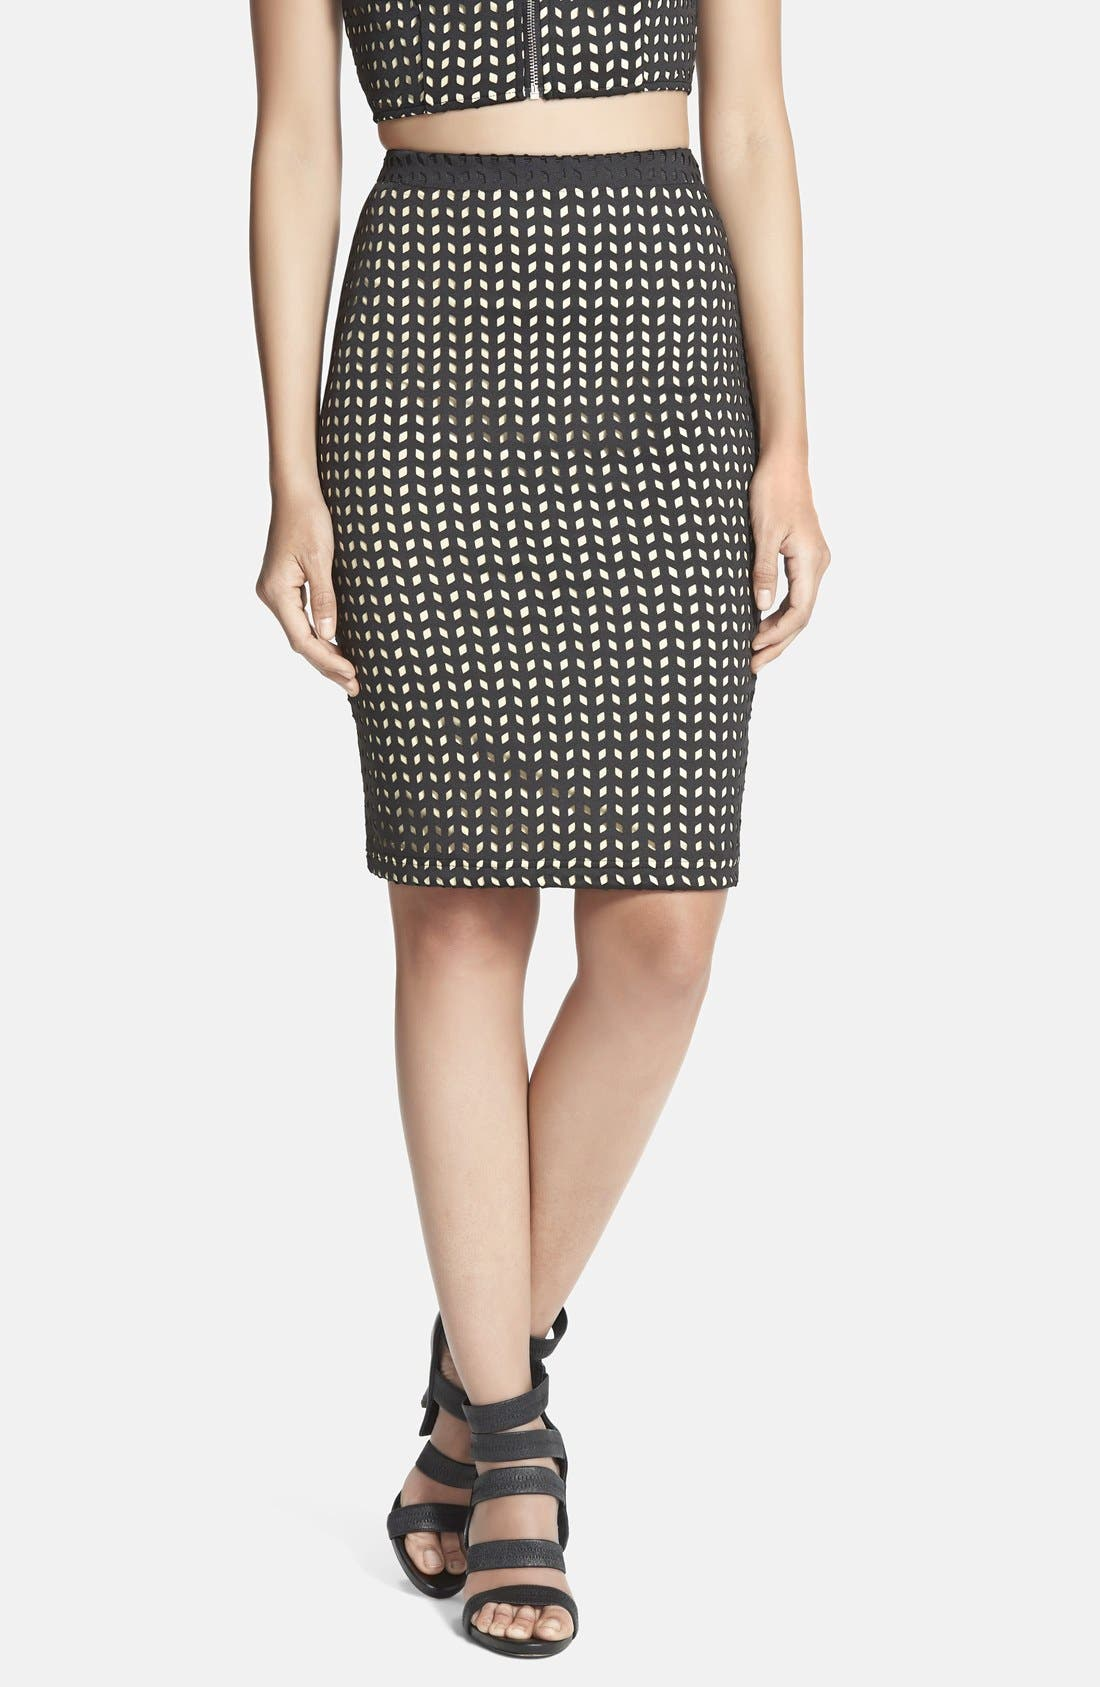 Main Image - Whitney Eve 'Manfern' Laser Cut Pencil Skirt